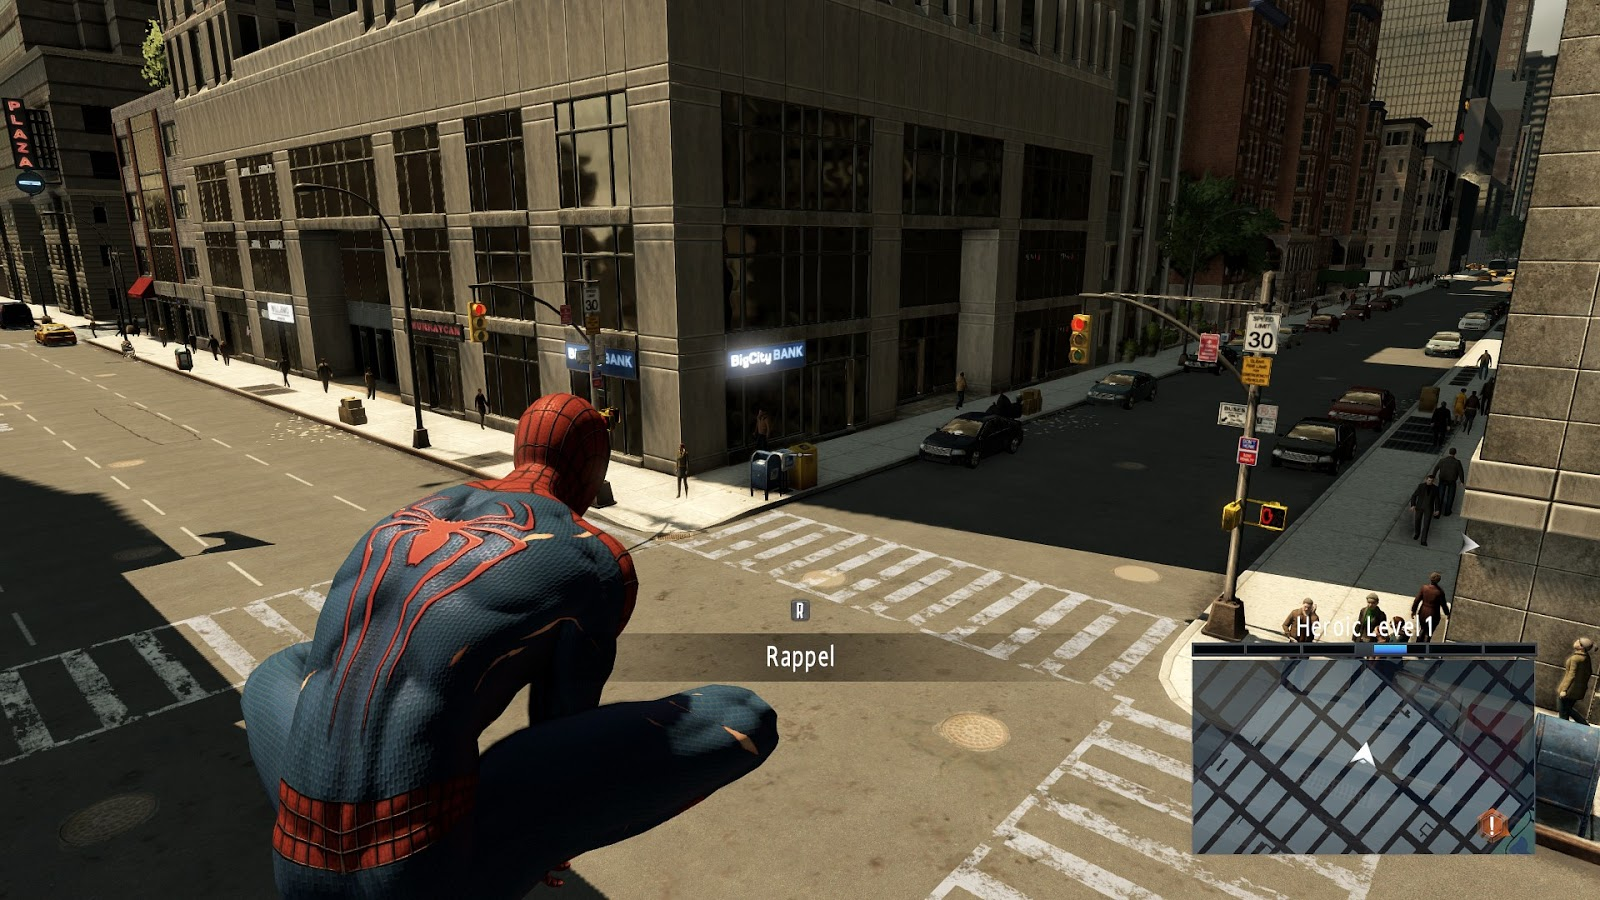 Spider man 3 pc game free download full.